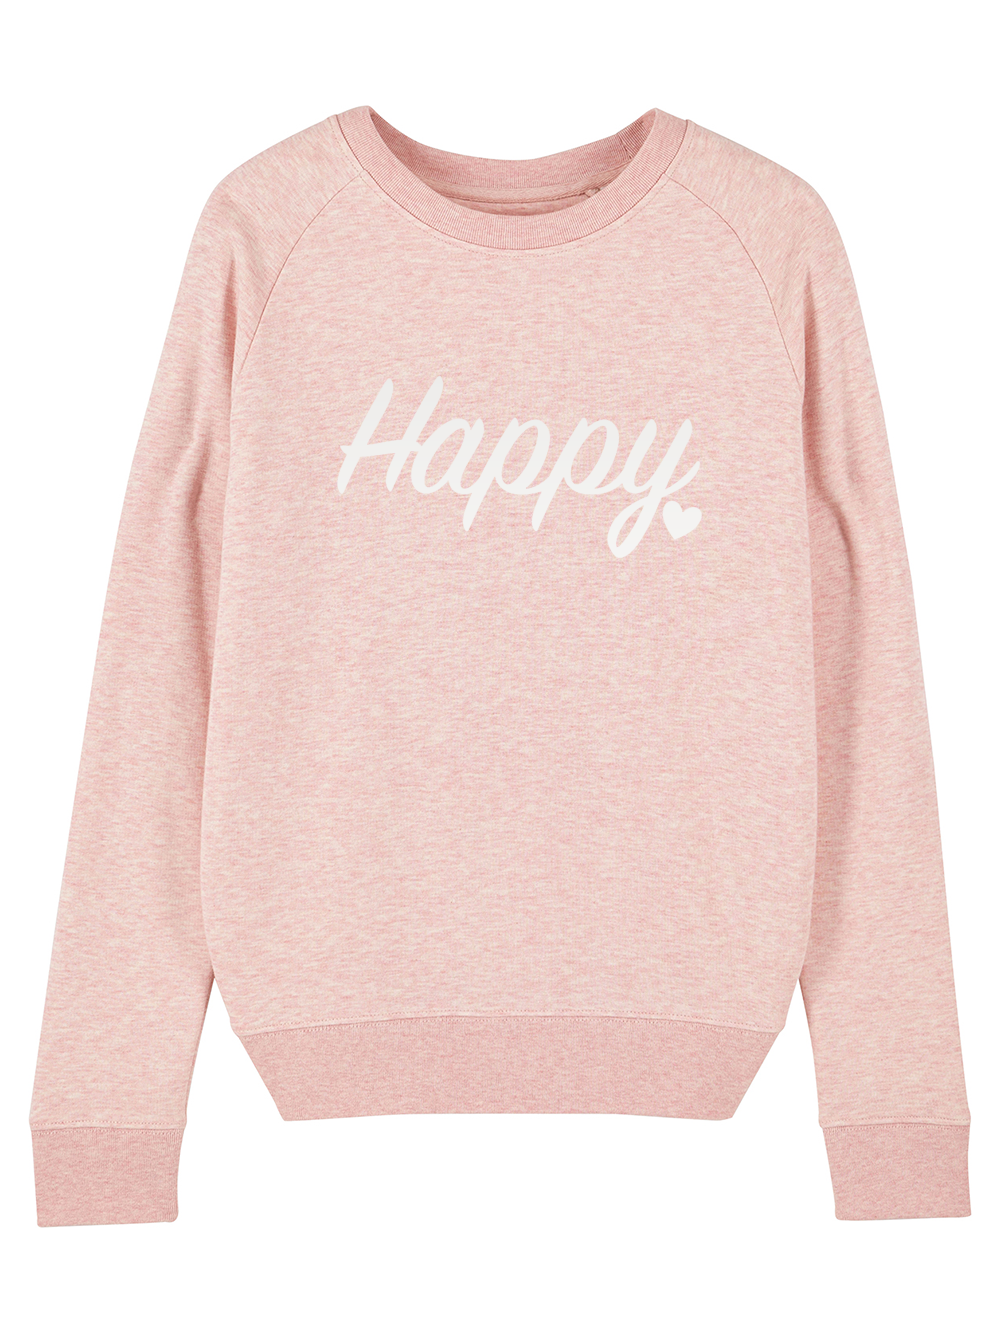 Happy Supersoft Jumper